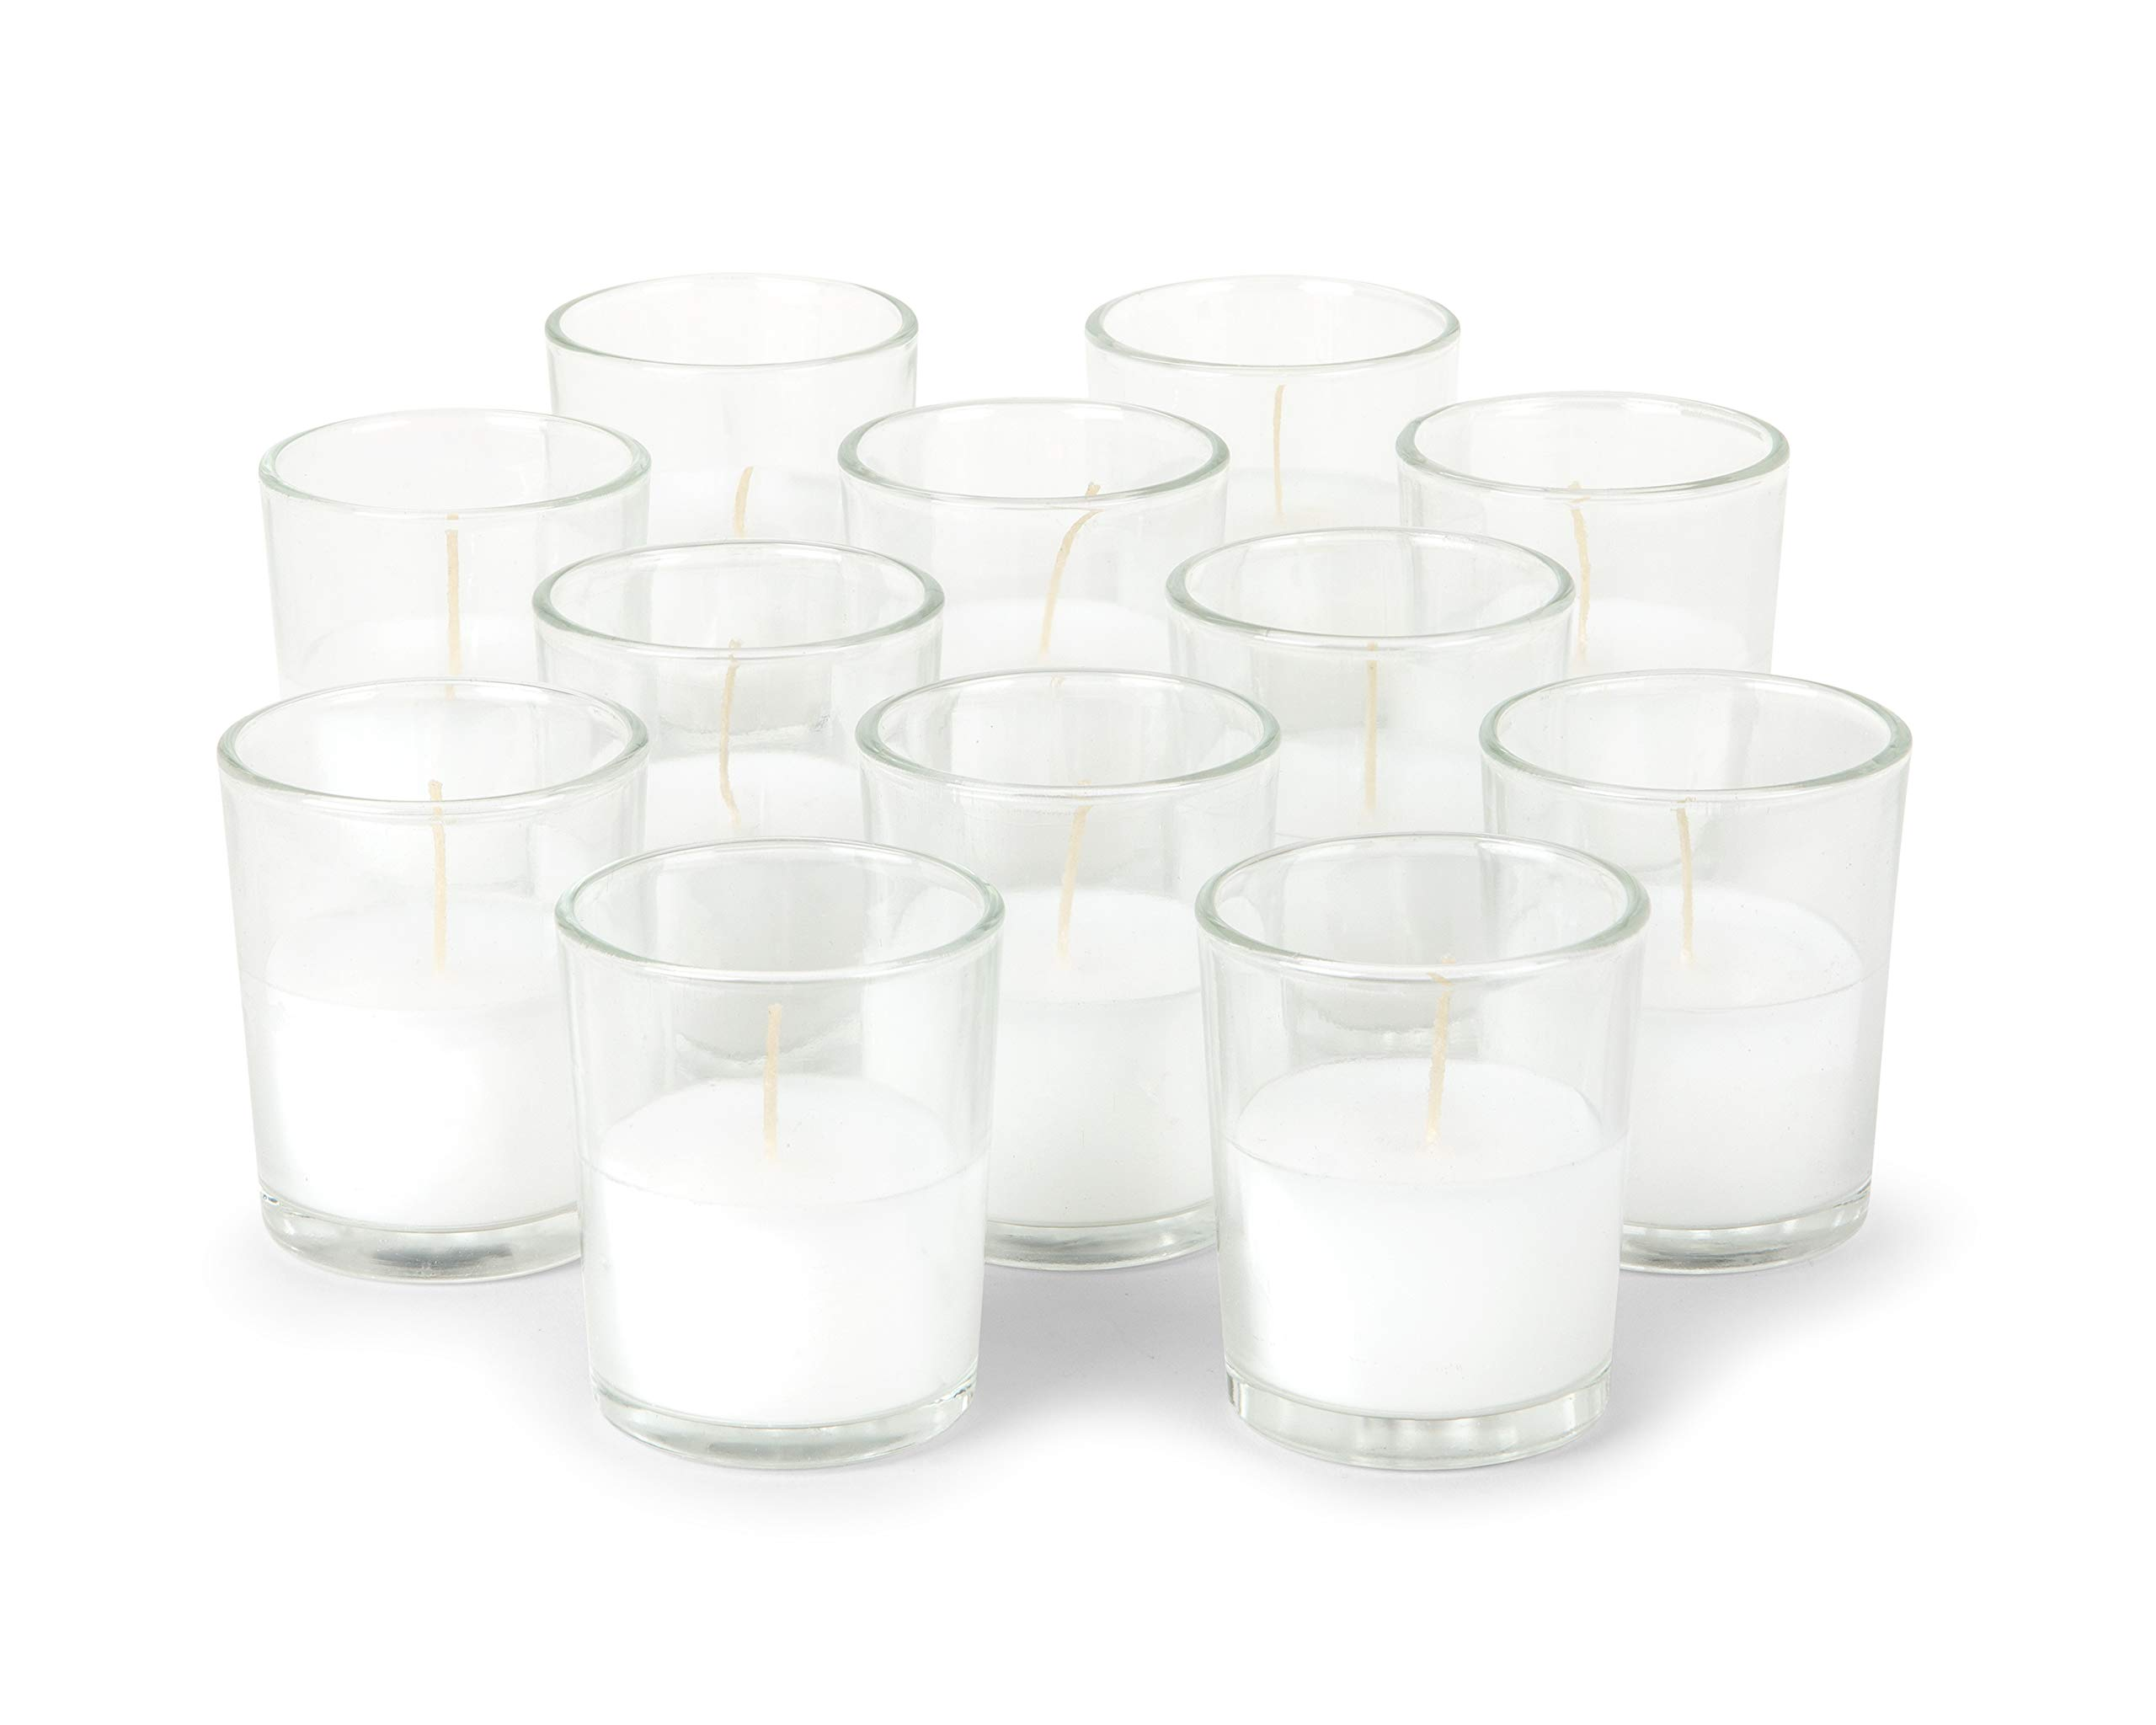 KISCO CANDLES: 12 Hour Votive Candles with Holders Clear Decorative Glass Home Decor, Beautiful Living Room, Kitchen, Bathroom Lighting | Long-Lasting Wax | 12-Pack